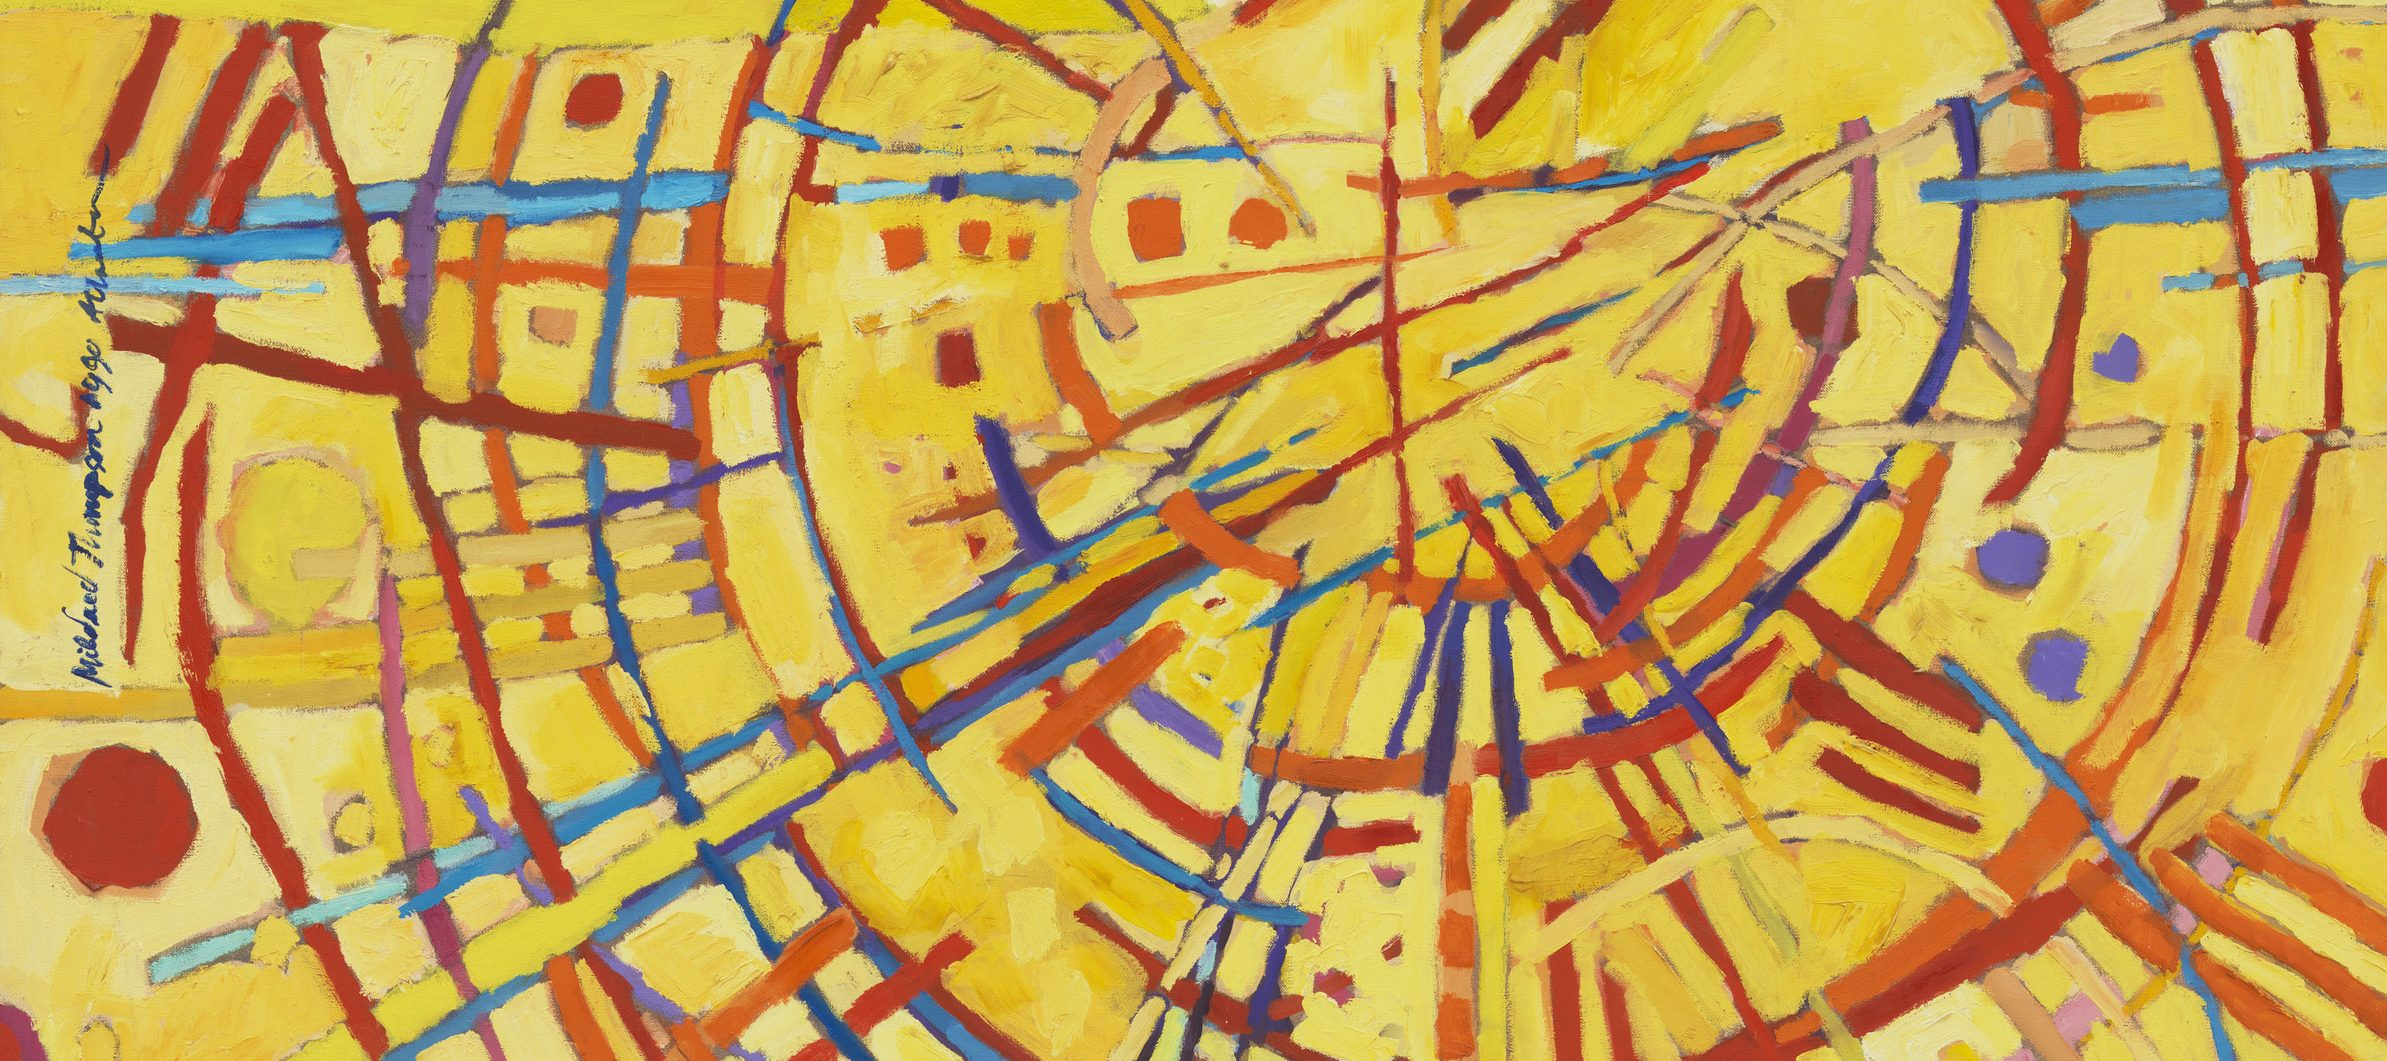 Abstract painting features a vivid yellow background covered by circles, daubs, and straight and wavy lines in red, orange, cobalt, sky blue, and violet. Arcing red strokes evoke concentric circles. Straight lines in other hues radiate out from the center circle like a starburst.